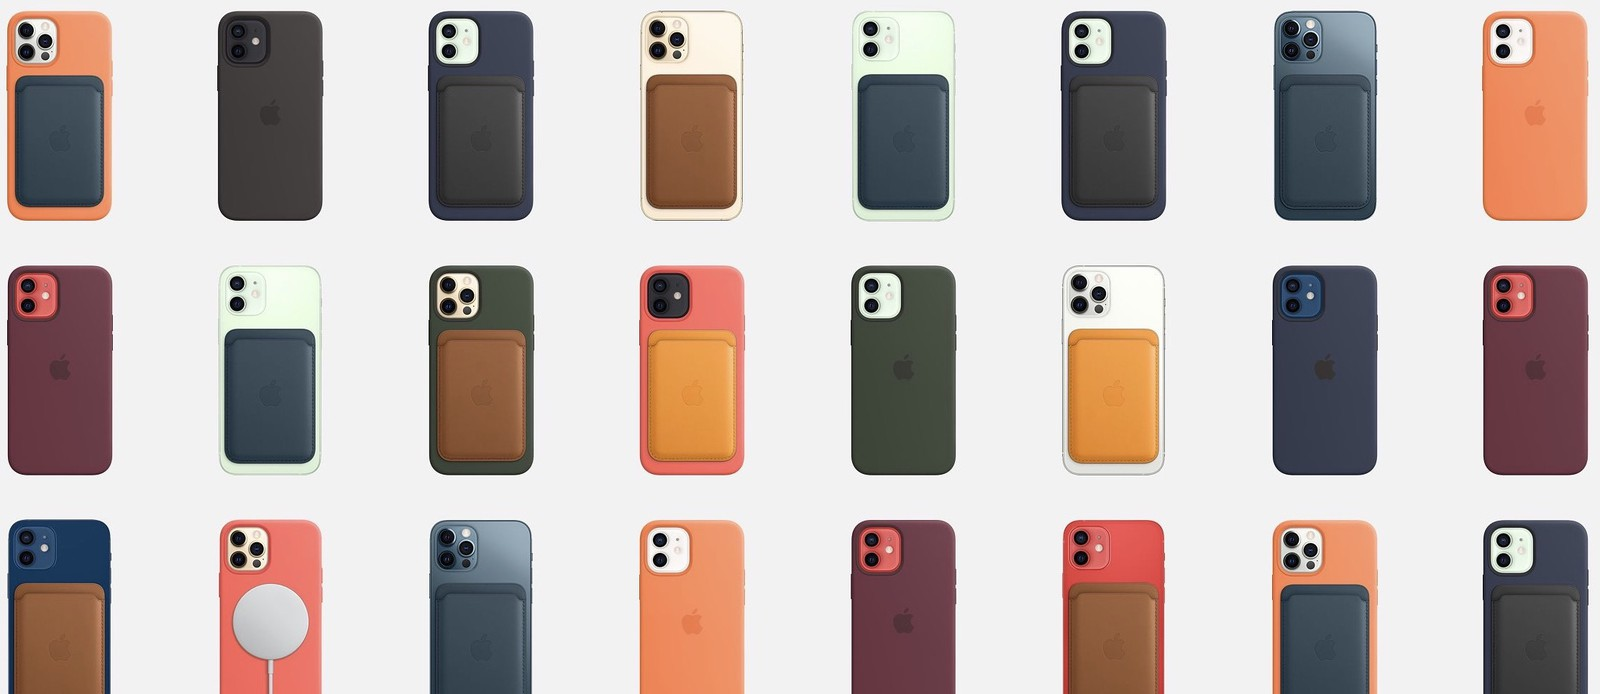 Apple's iPhone 12-hoesjes